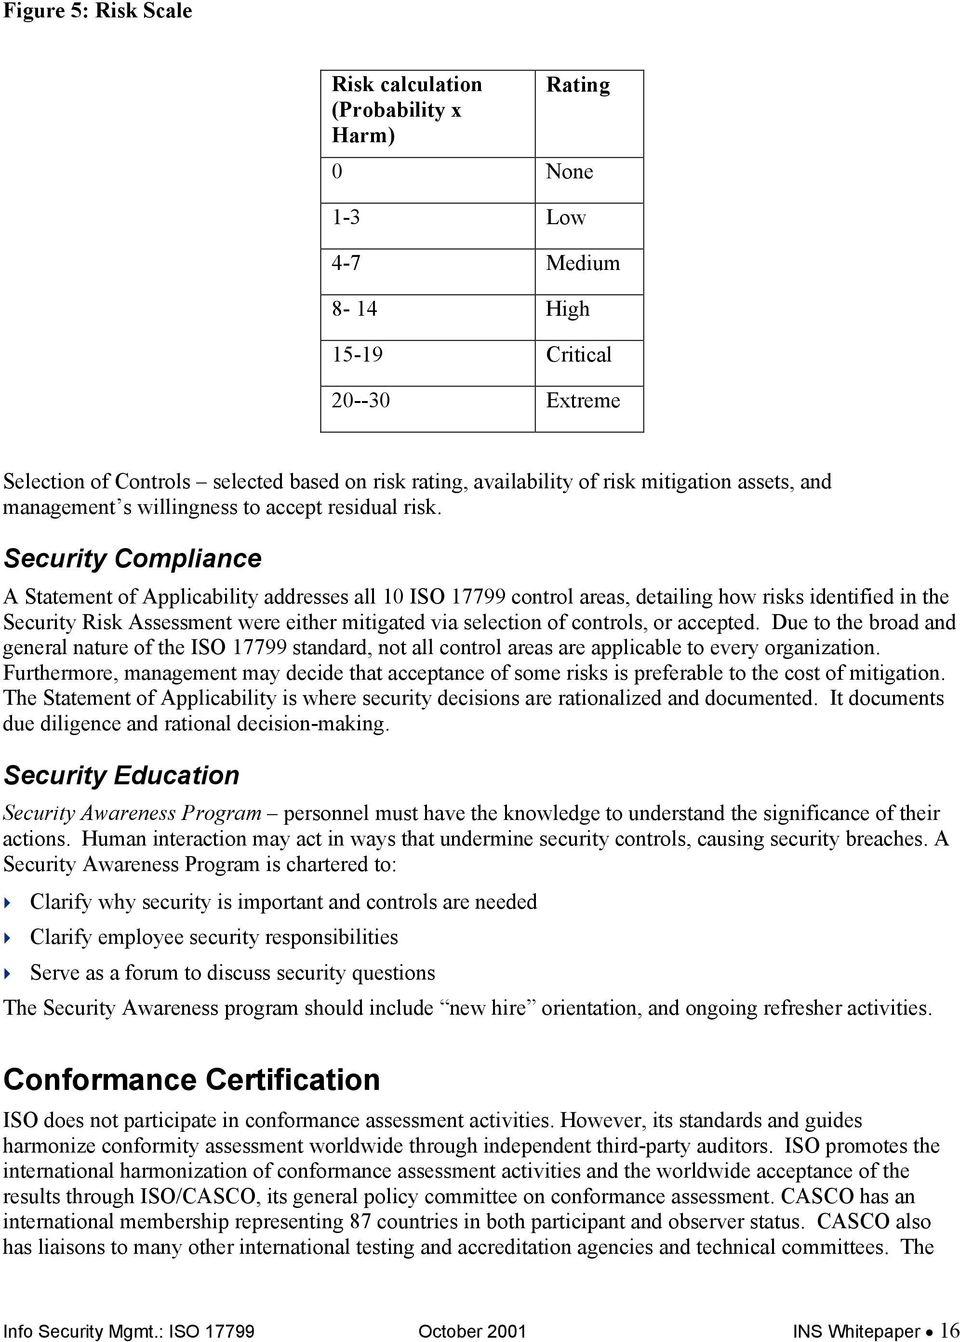 Security Compliance A Statement of Applicability addresses all 10 ISO 17799 control areas, detailing how risks identified in the Security Risk Assessment were either mitigated via selection of